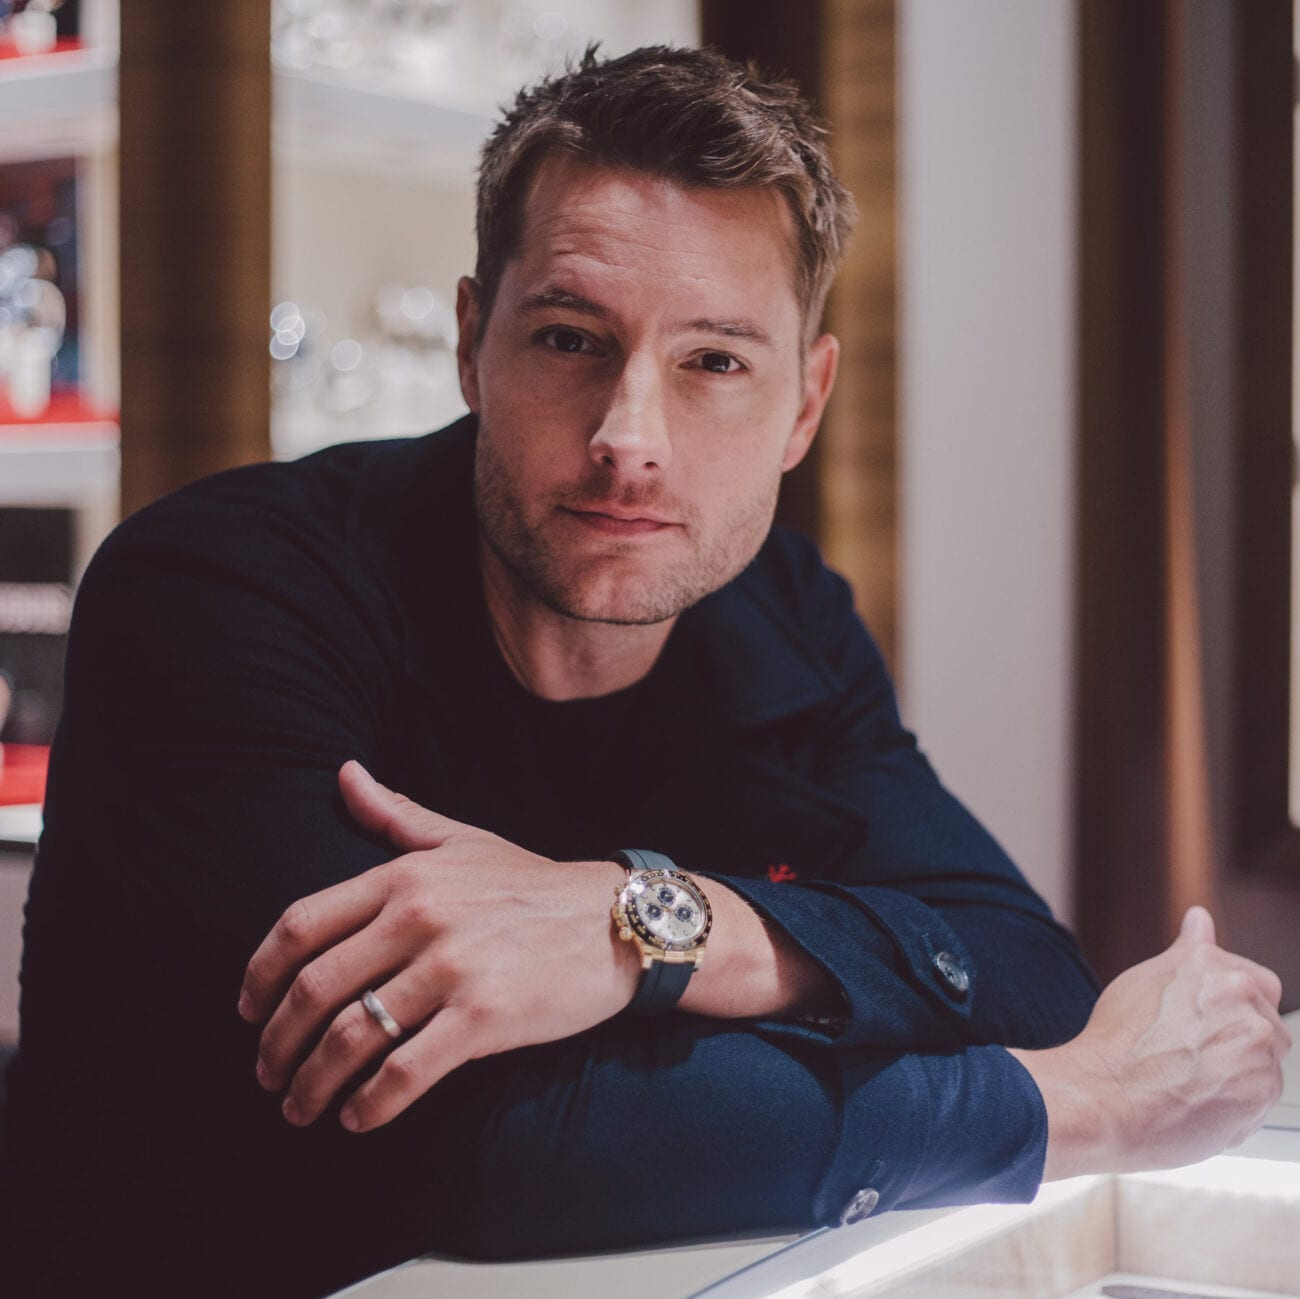 'This Is Us' star Justin Hartley's surprising 2020 net worth came with a heavy toll. Are you team Hartley the heartthrob or heartbreaker?